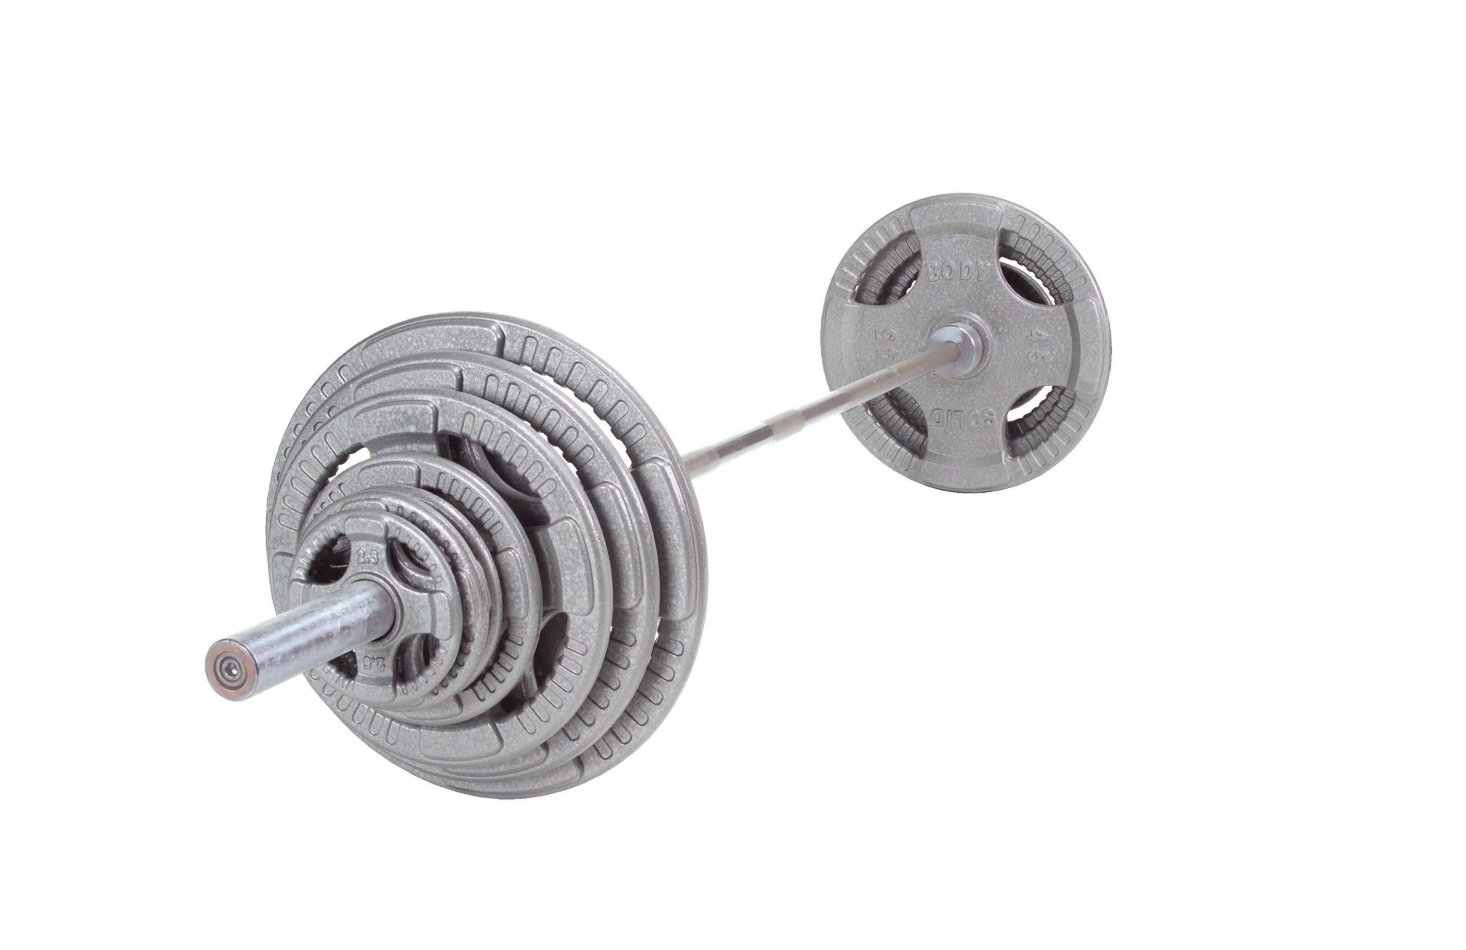 400lb Set - Body-Solid Olympic Steel Grip Weight Plate Set with Chrome Bar